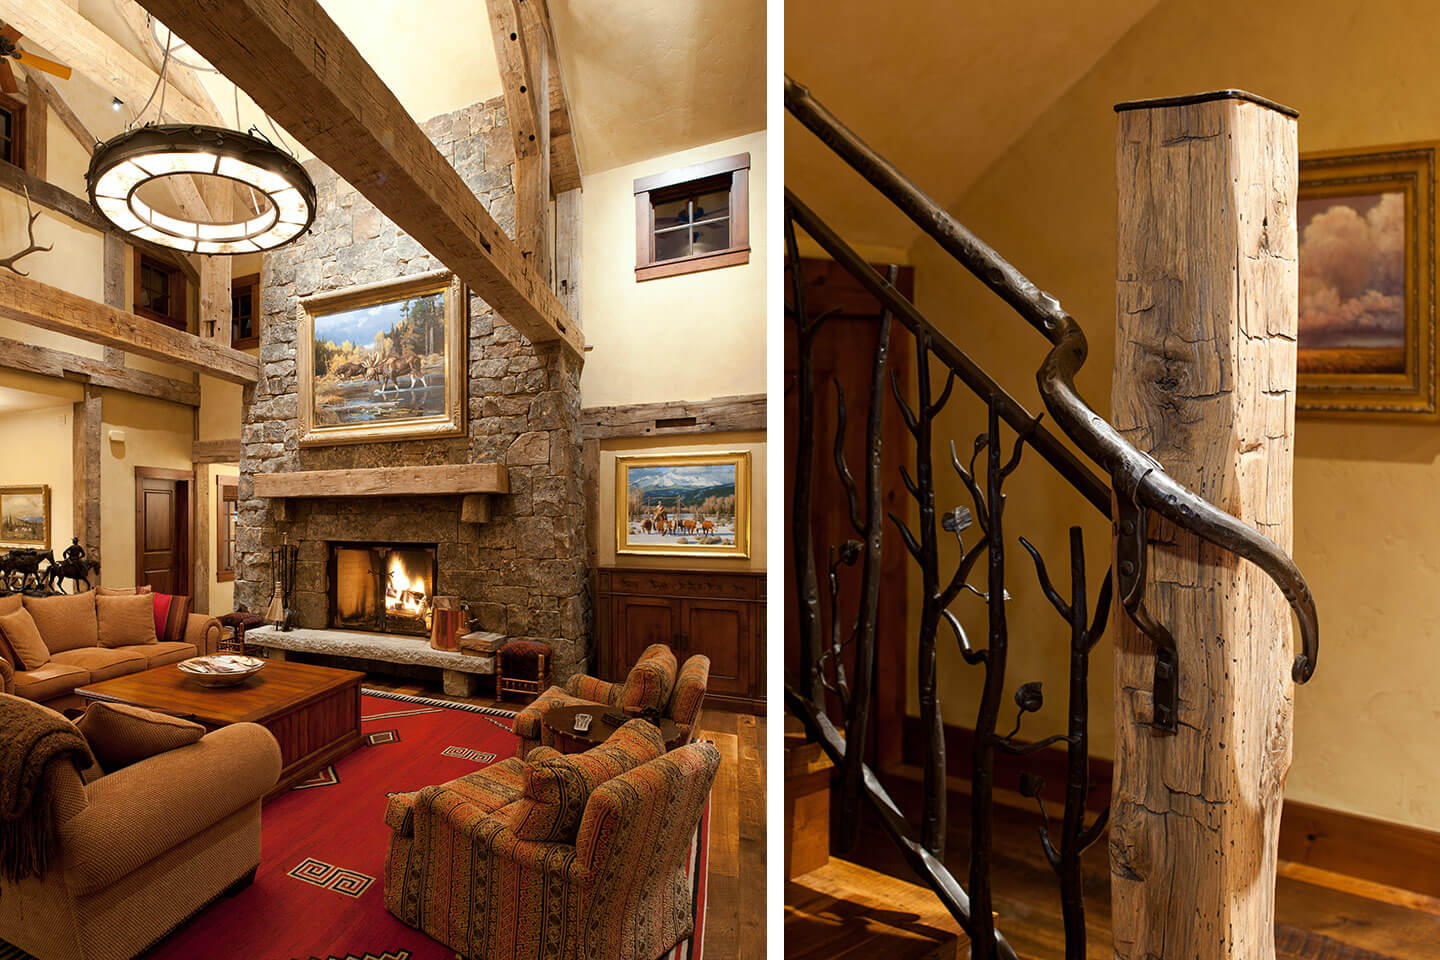 Living room fireplace and staircase detail